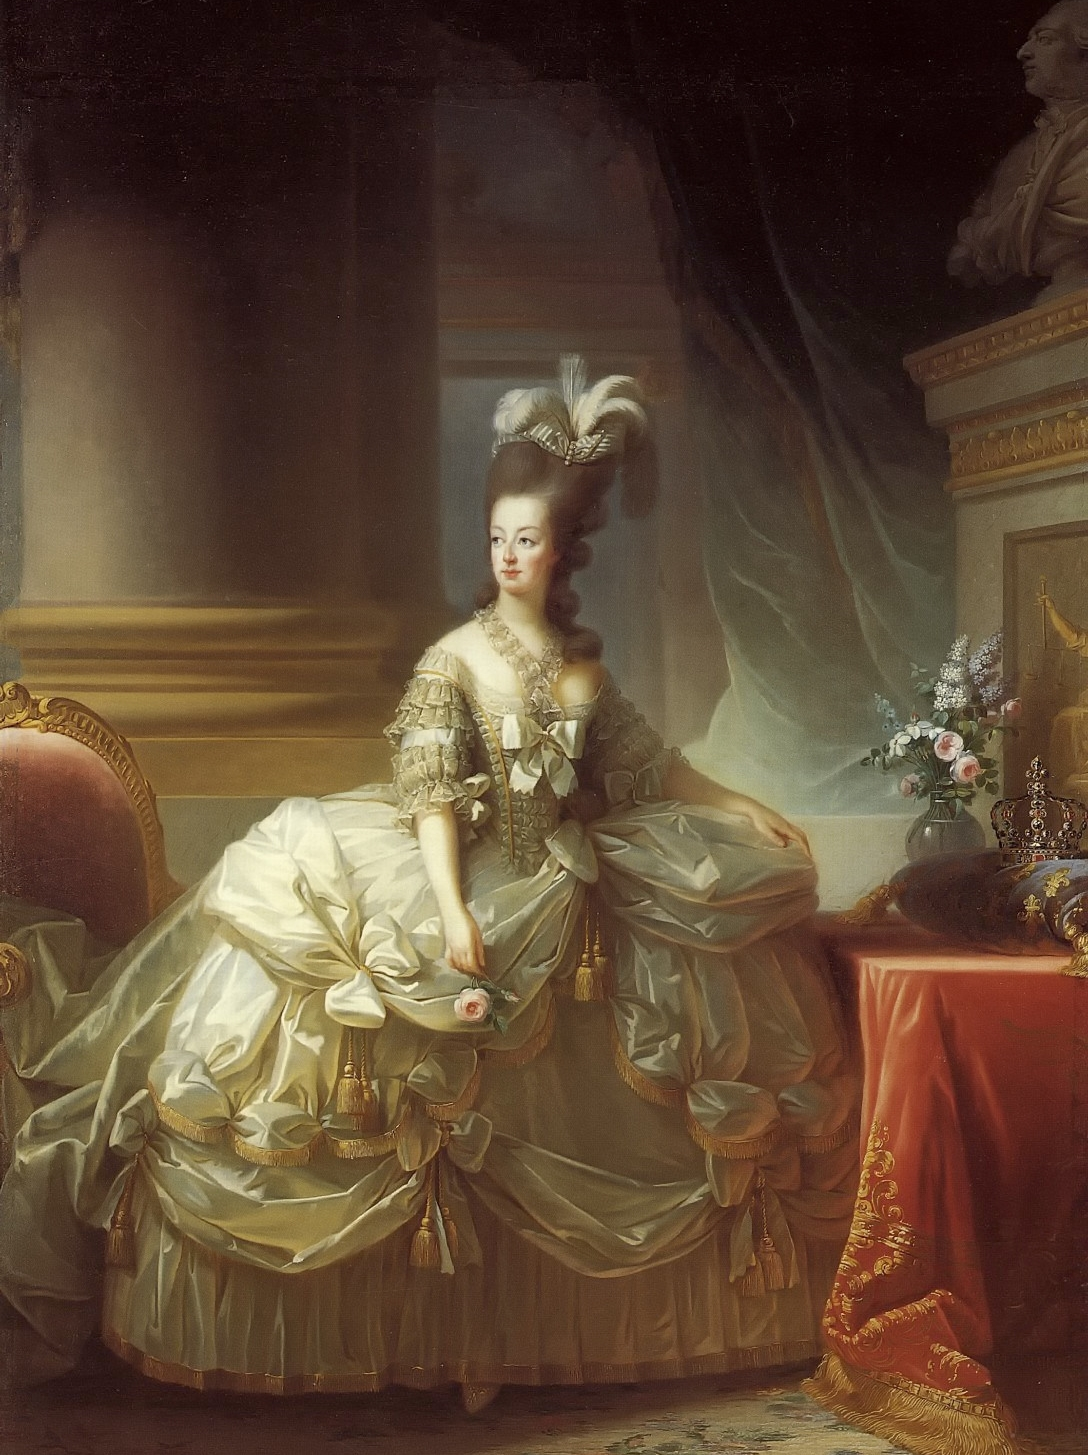 Marie Antoinette in a court dress worn over extremely wide panniers, Louise Élisabeth Vigée Le Brun, 1778